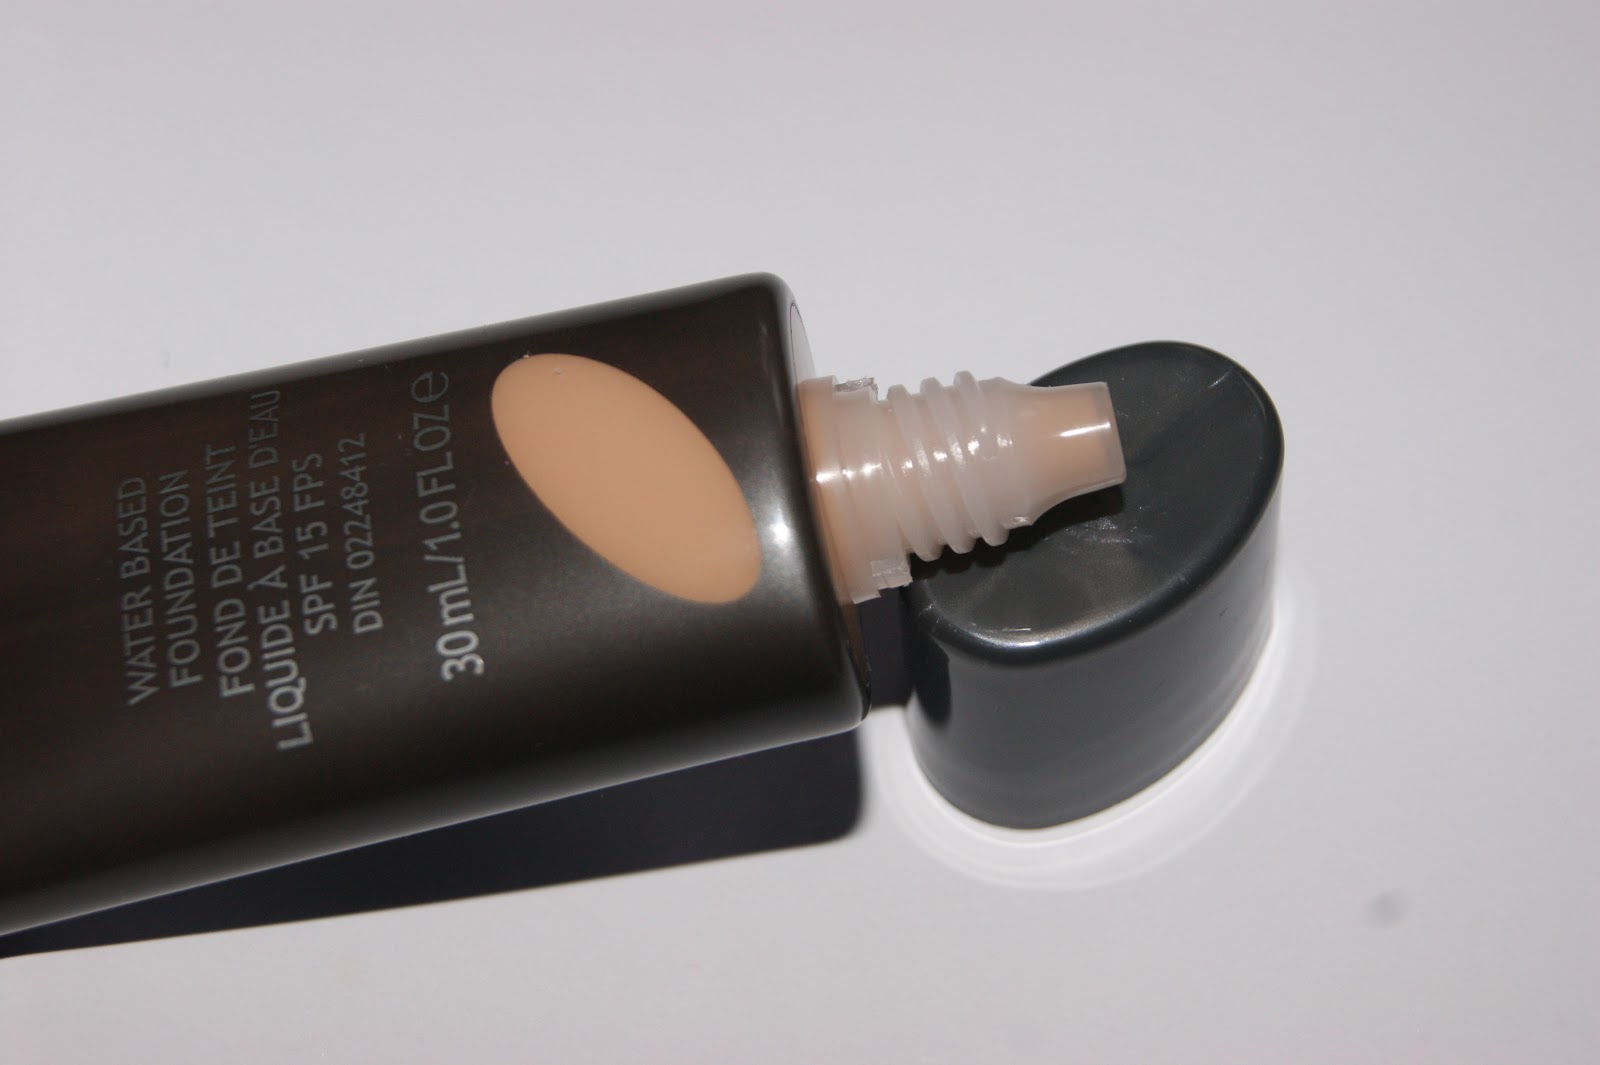 Cover Fx Natural Fx Water Based Liquid Foundation Review